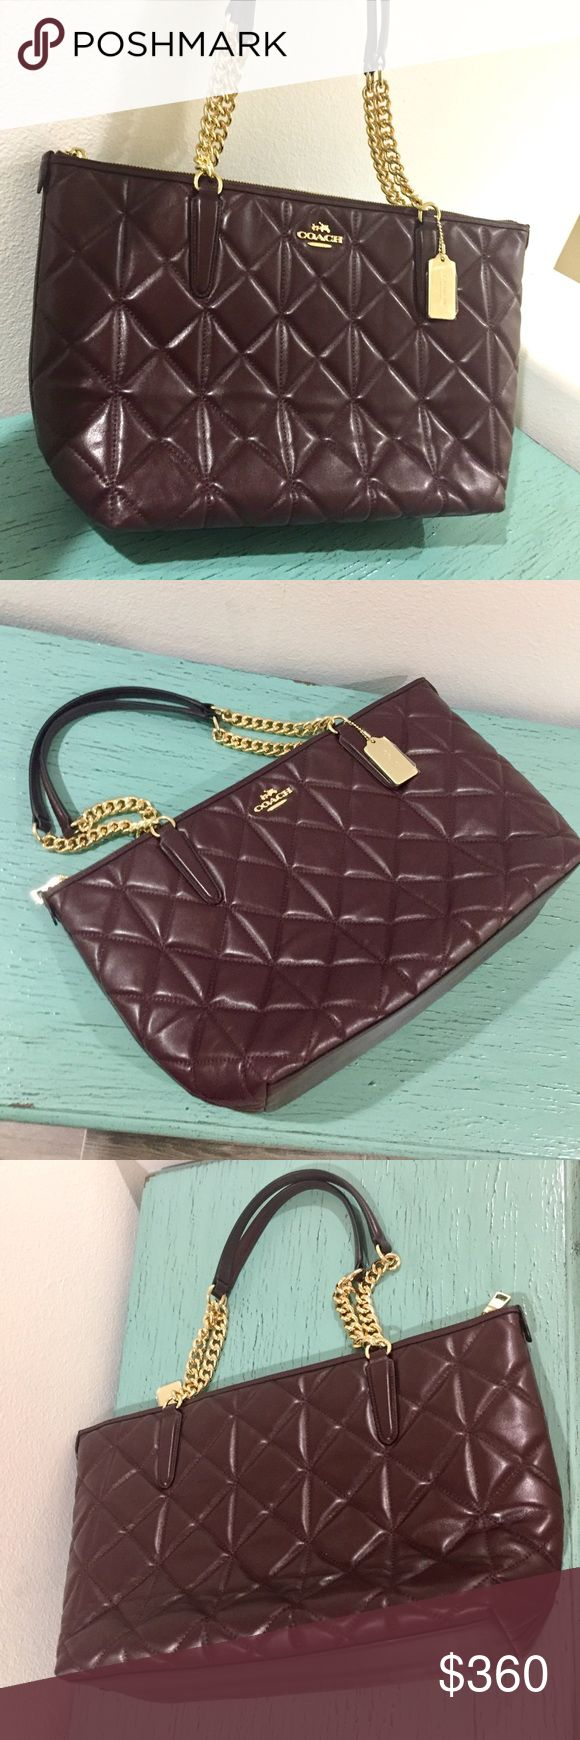 Coach Quilted Oxblood Tote with Gold Accents Coach Quilted Leather Ava hand oxblood tote. Dimensions: 16L x 9H x 5 D One zip pocket, multifunction pockets. Gold chain strap Accents. Dual leather handles. Brand New. Pristine. Coach Bags